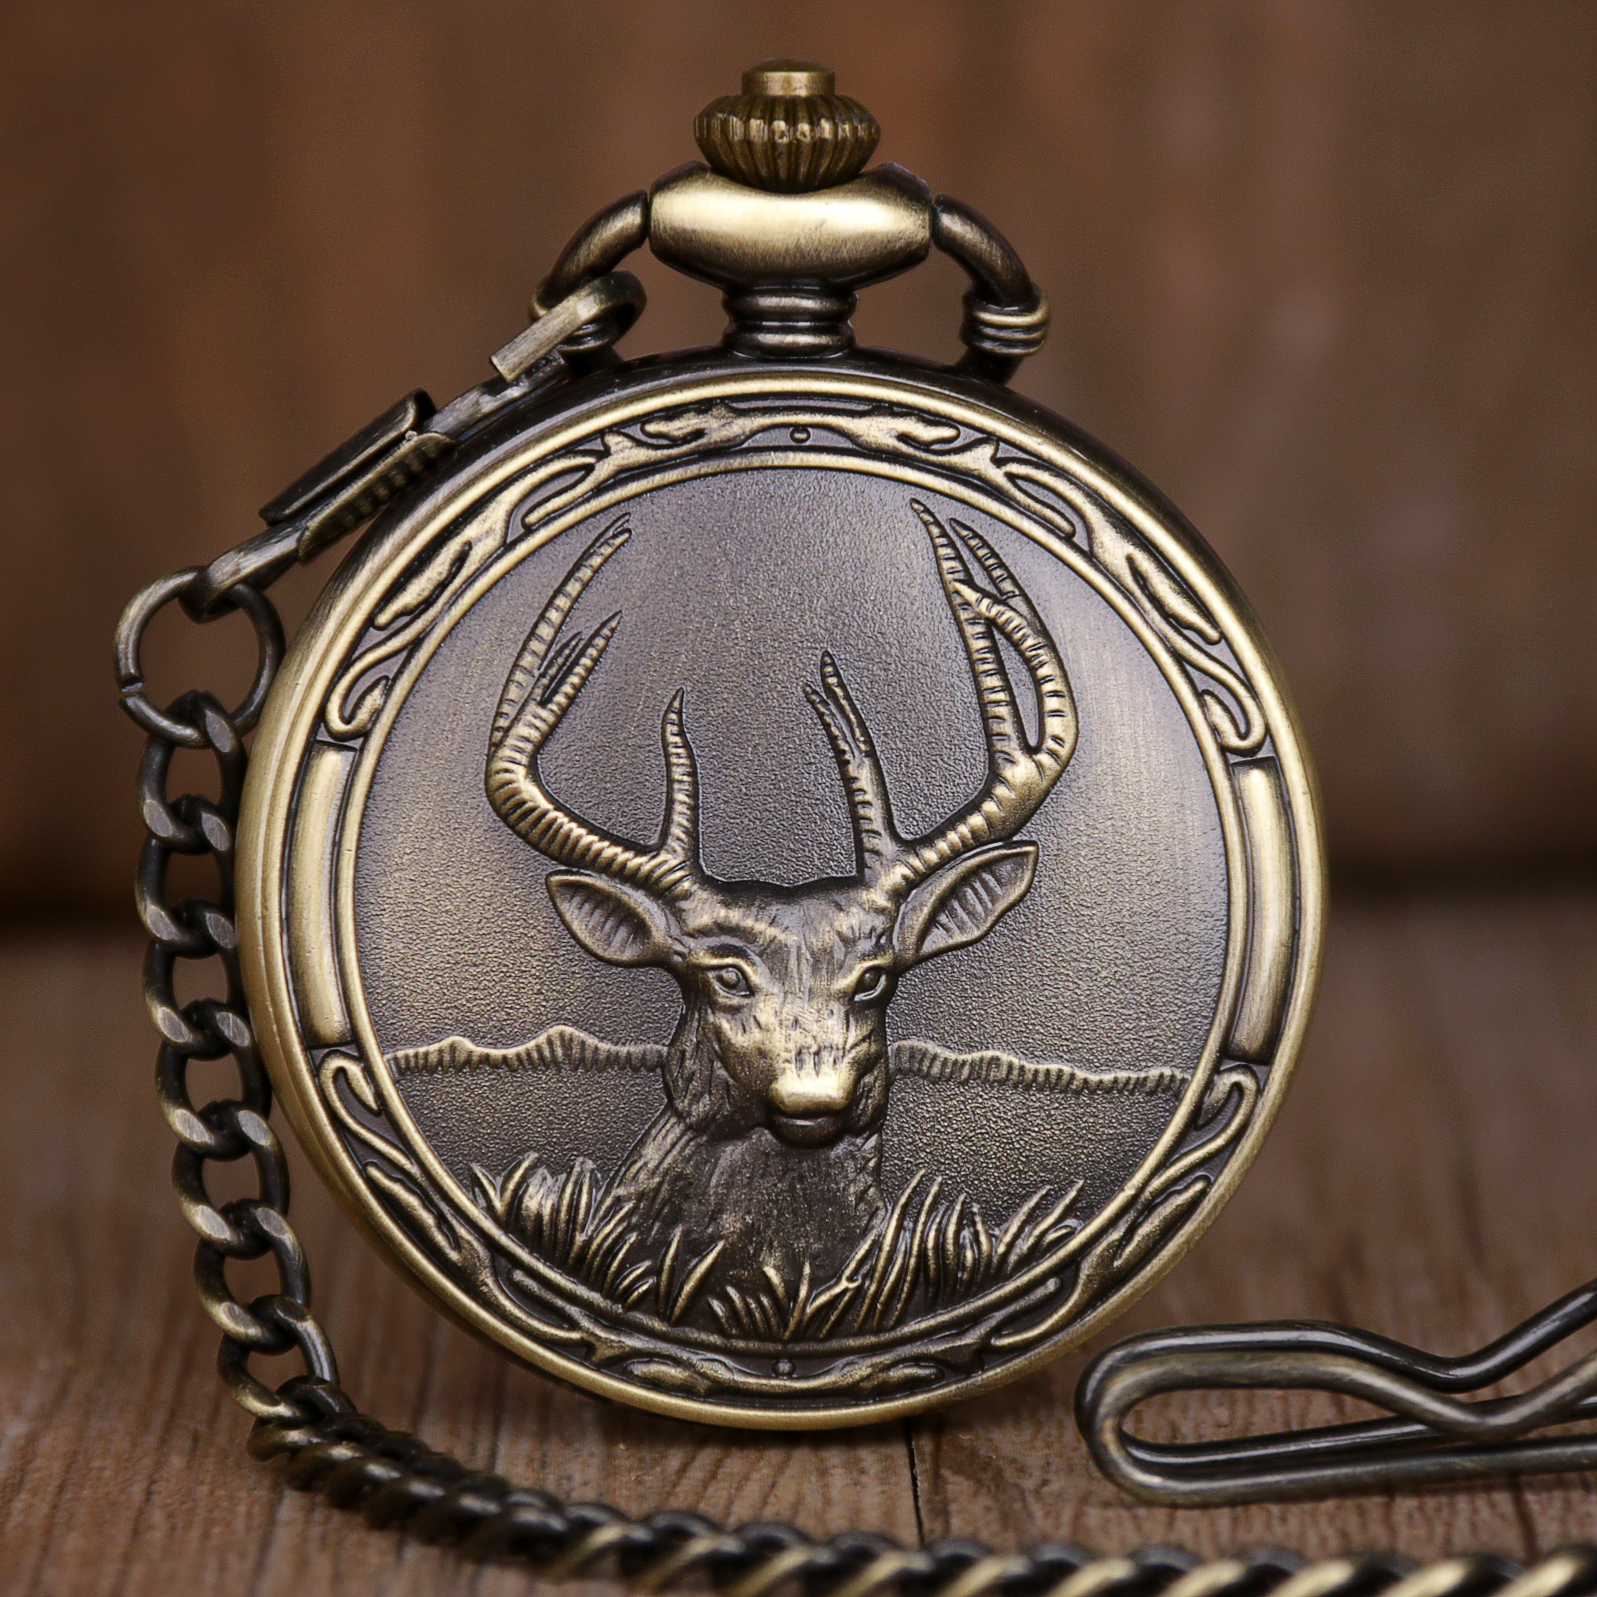 New Arrival Deer Quartz Pocket Watches Analog Pendant Pocket Watches With Necklace Chain Watches Gifts For Men Women